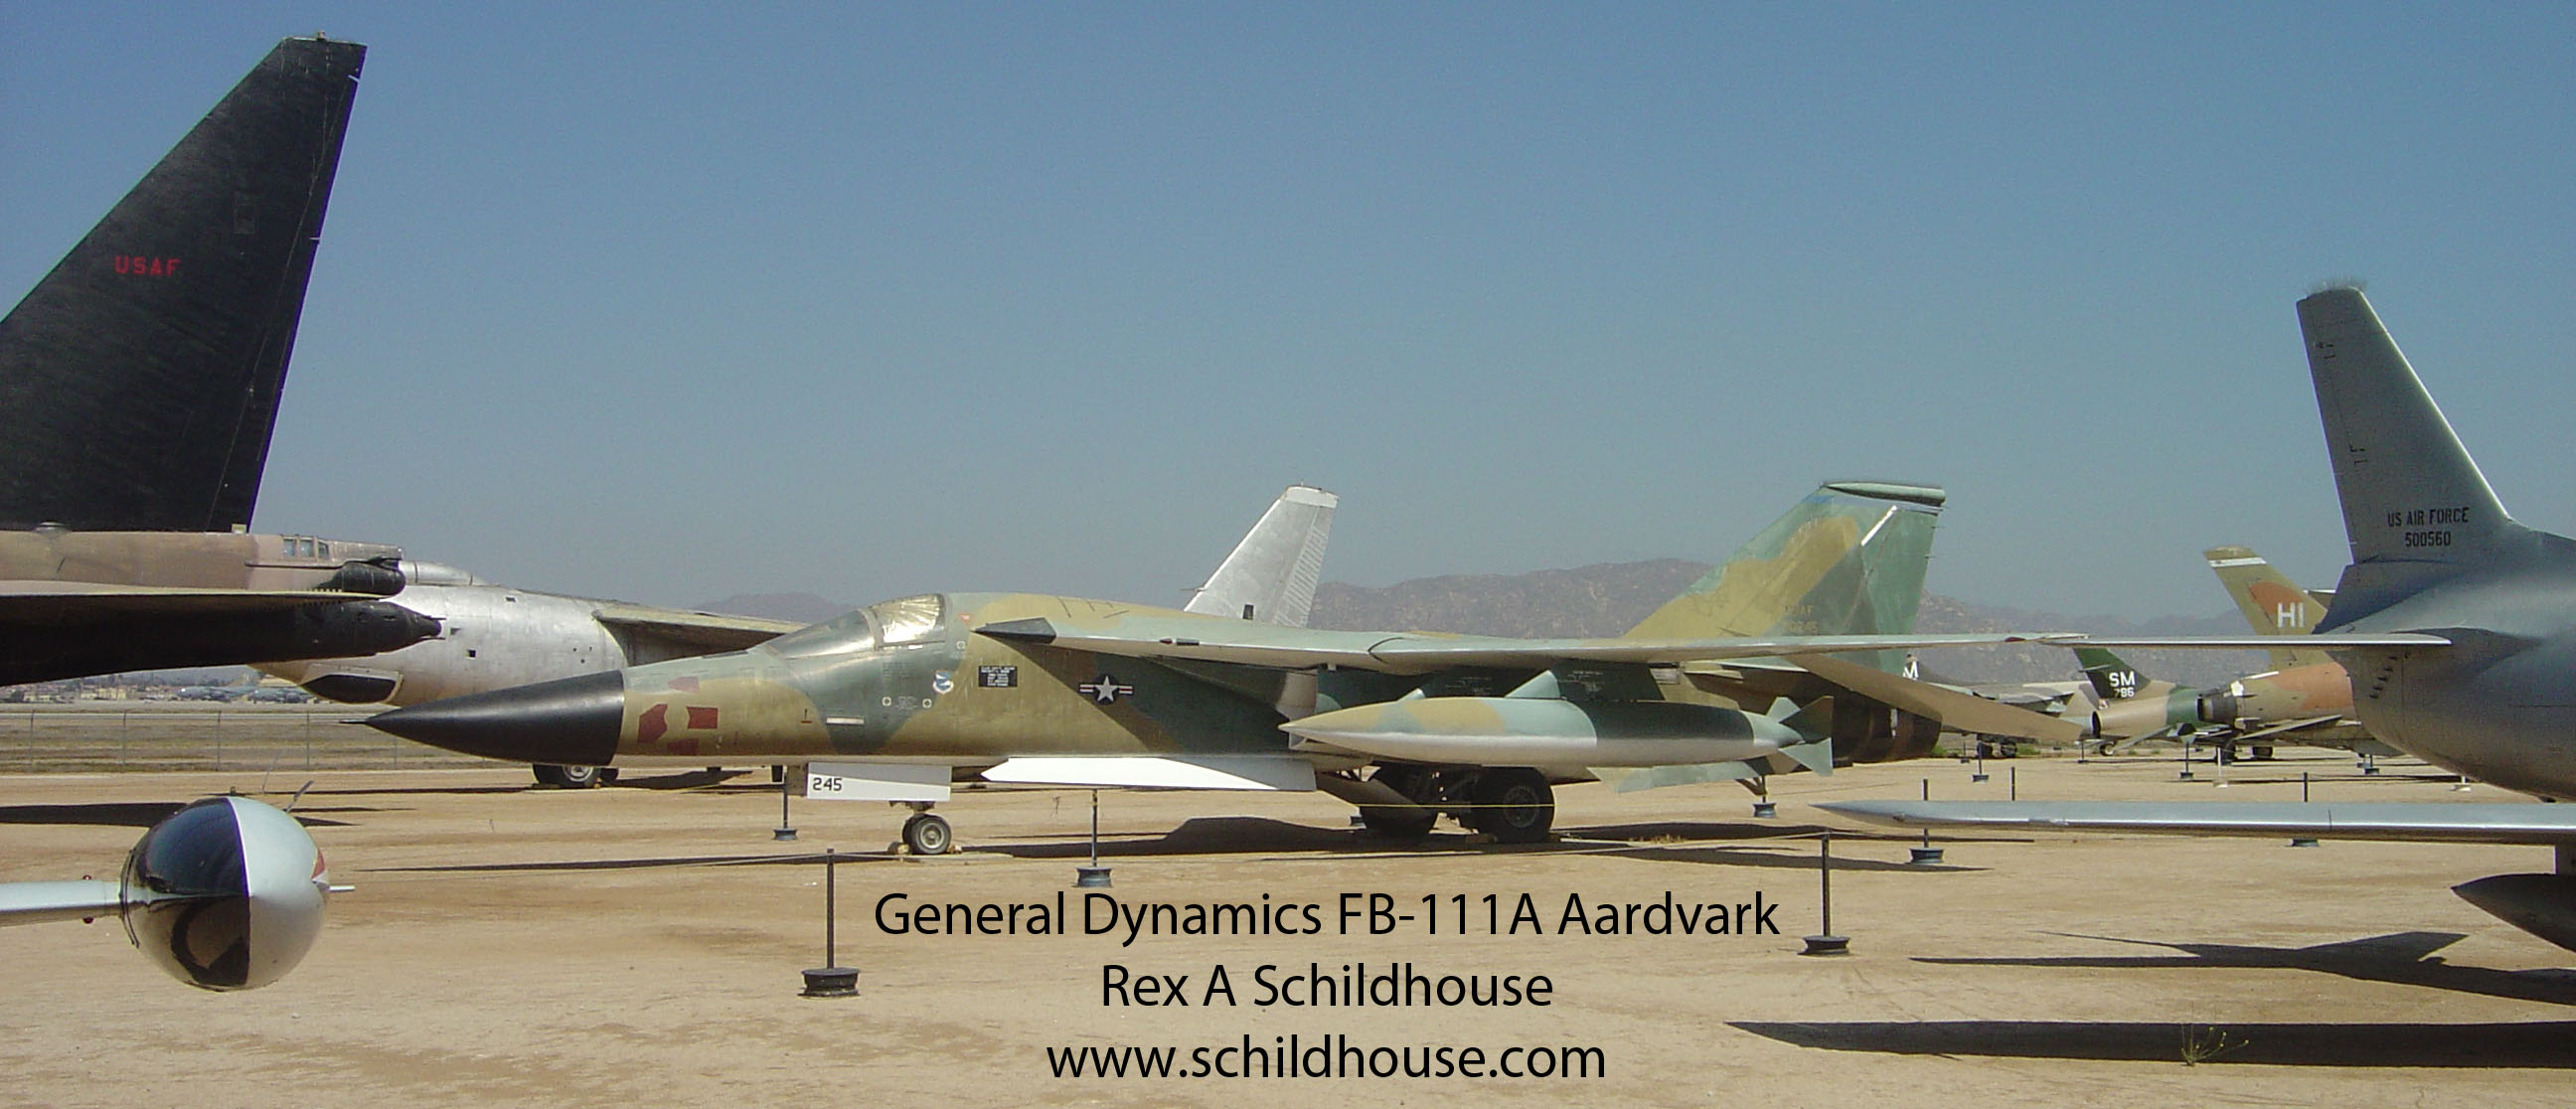 General Dynamics FB-111A Aardvark